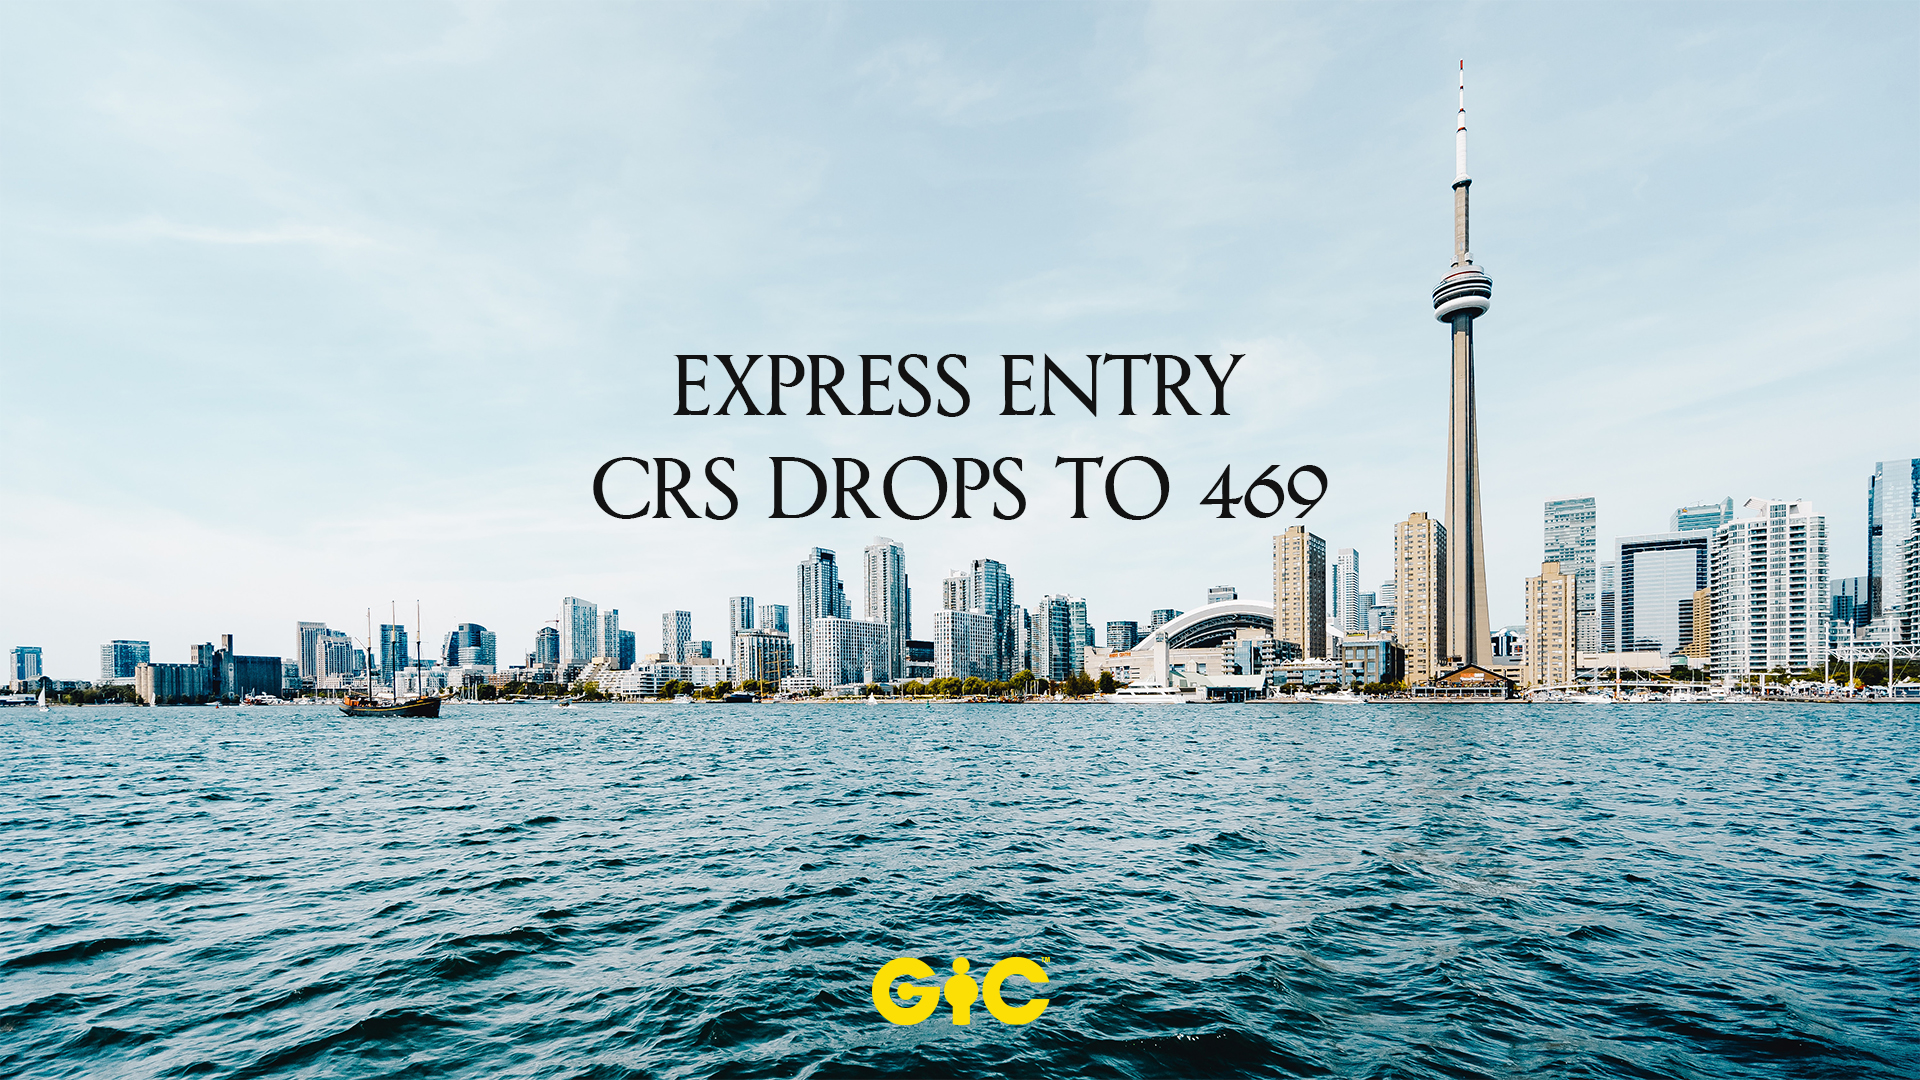 Express Entry CRS drops to 469